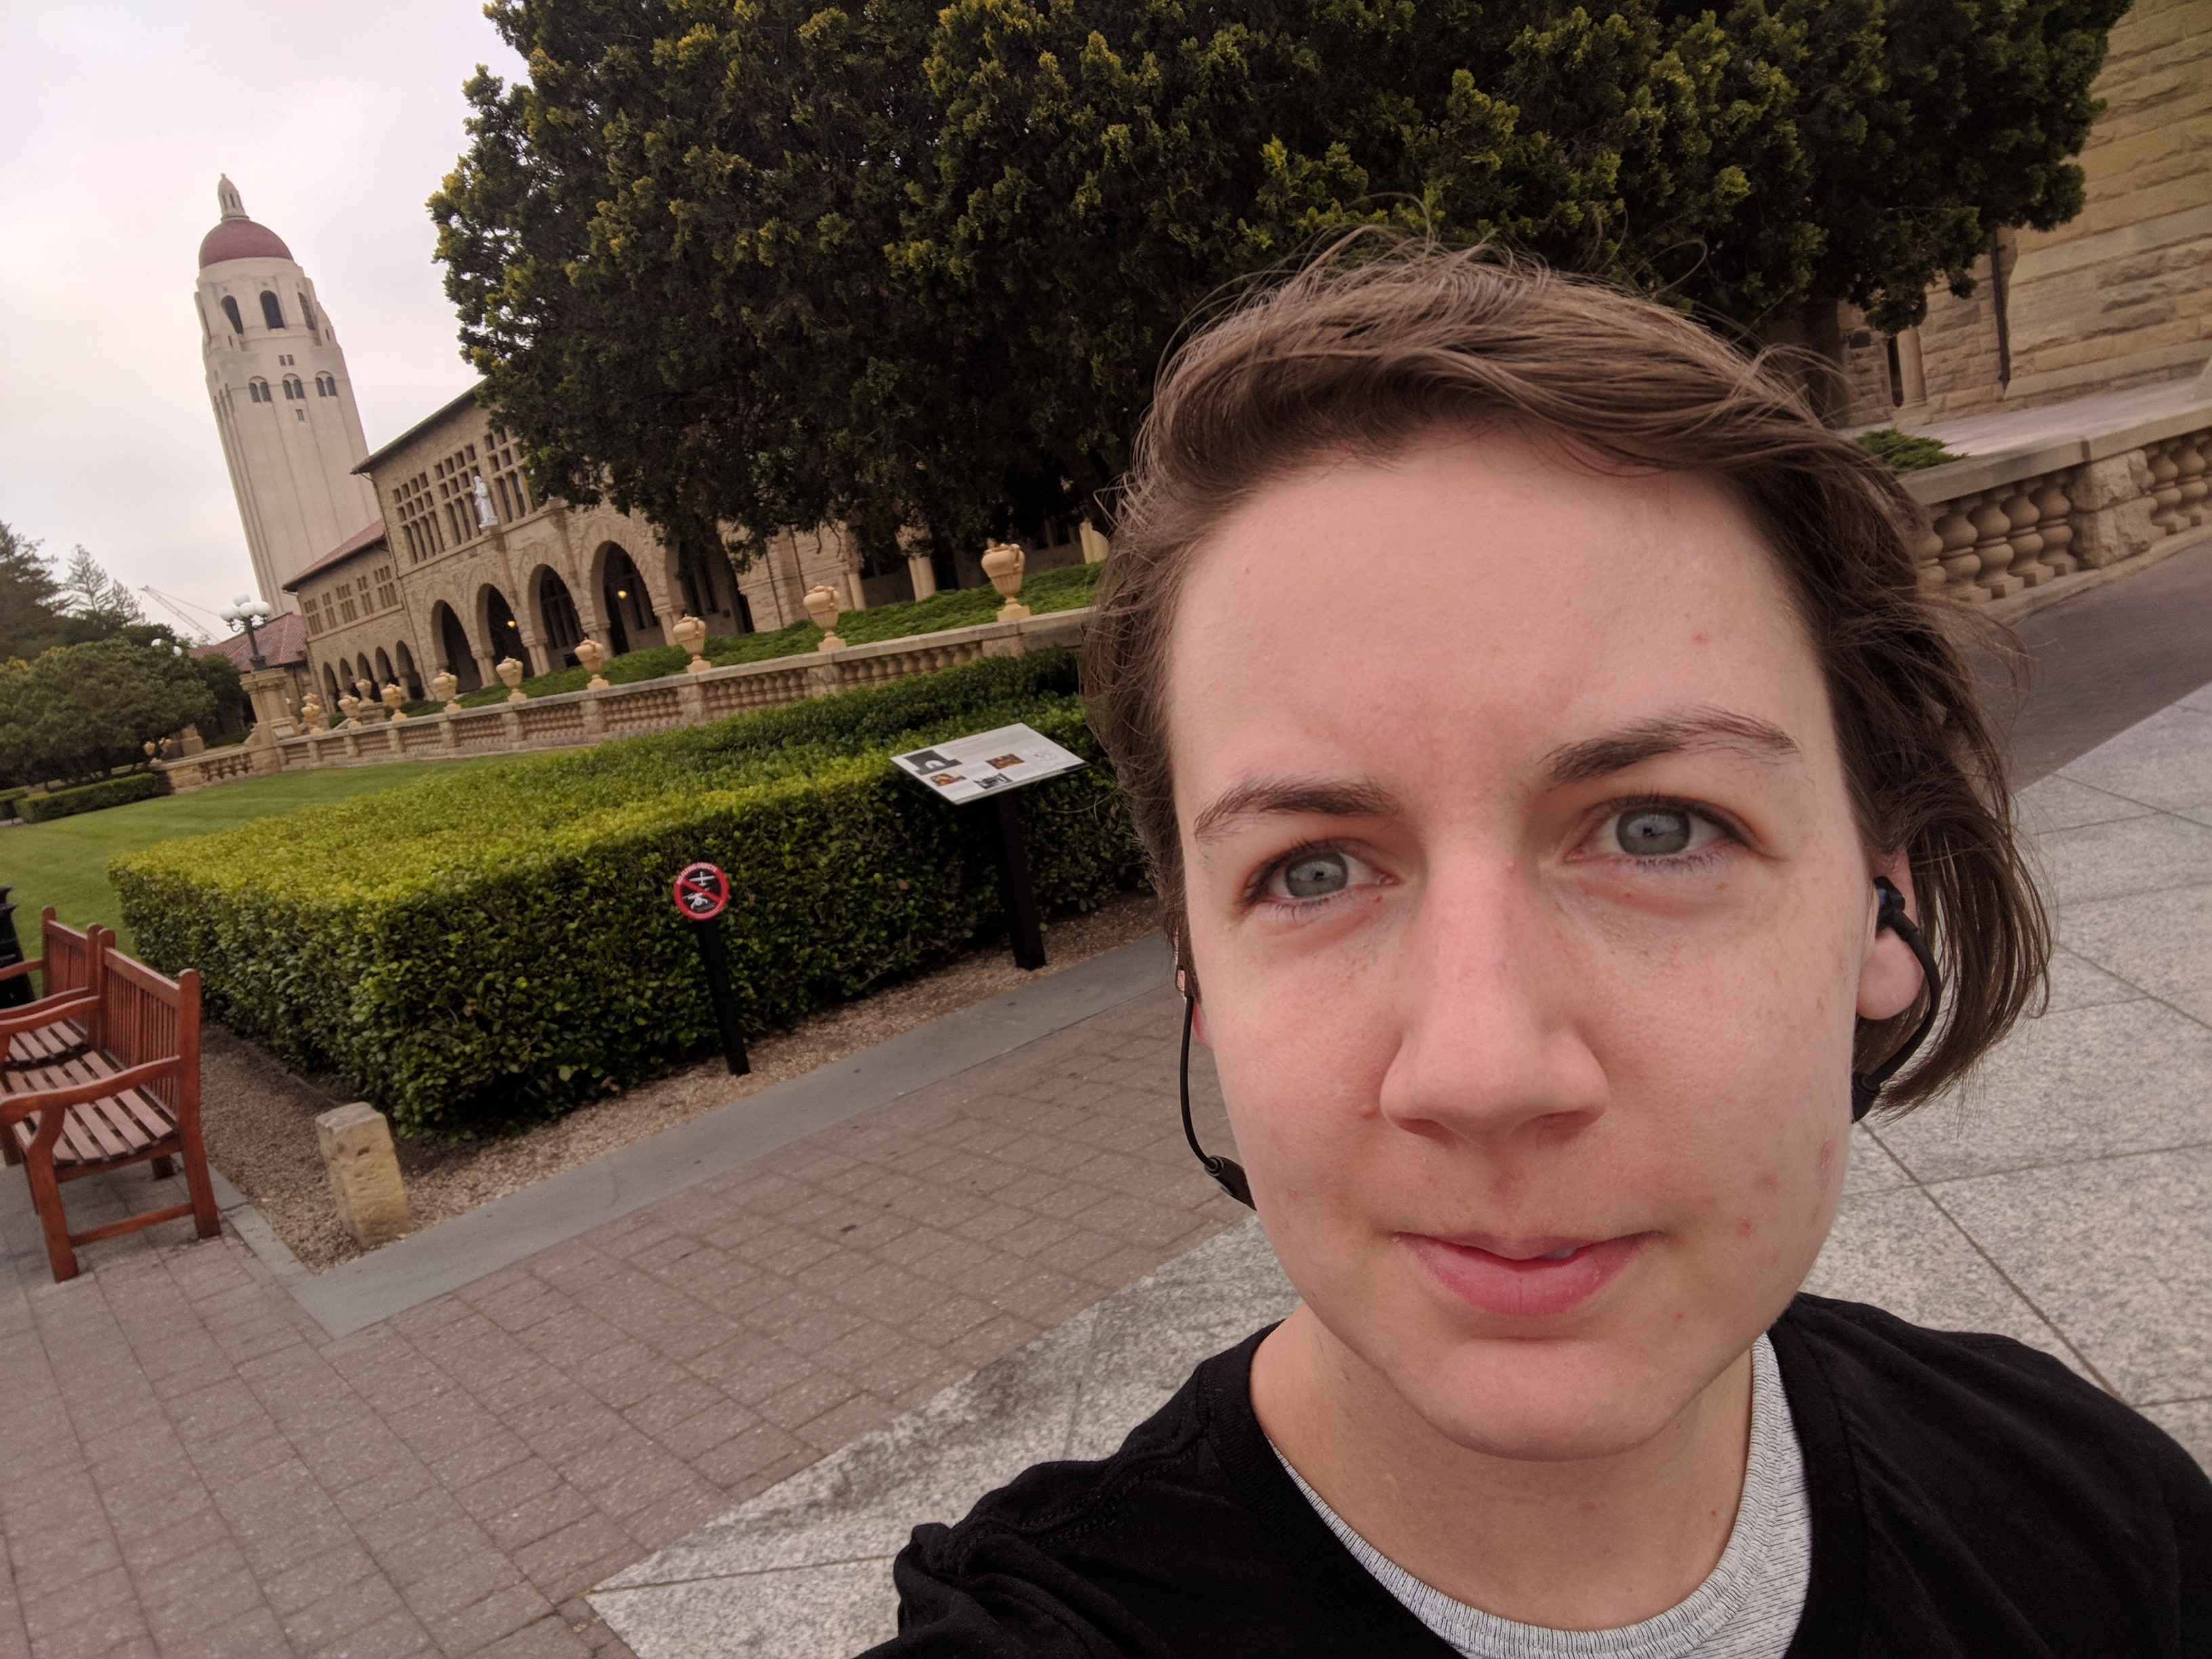 I got to run around Stanford University one morning before work.